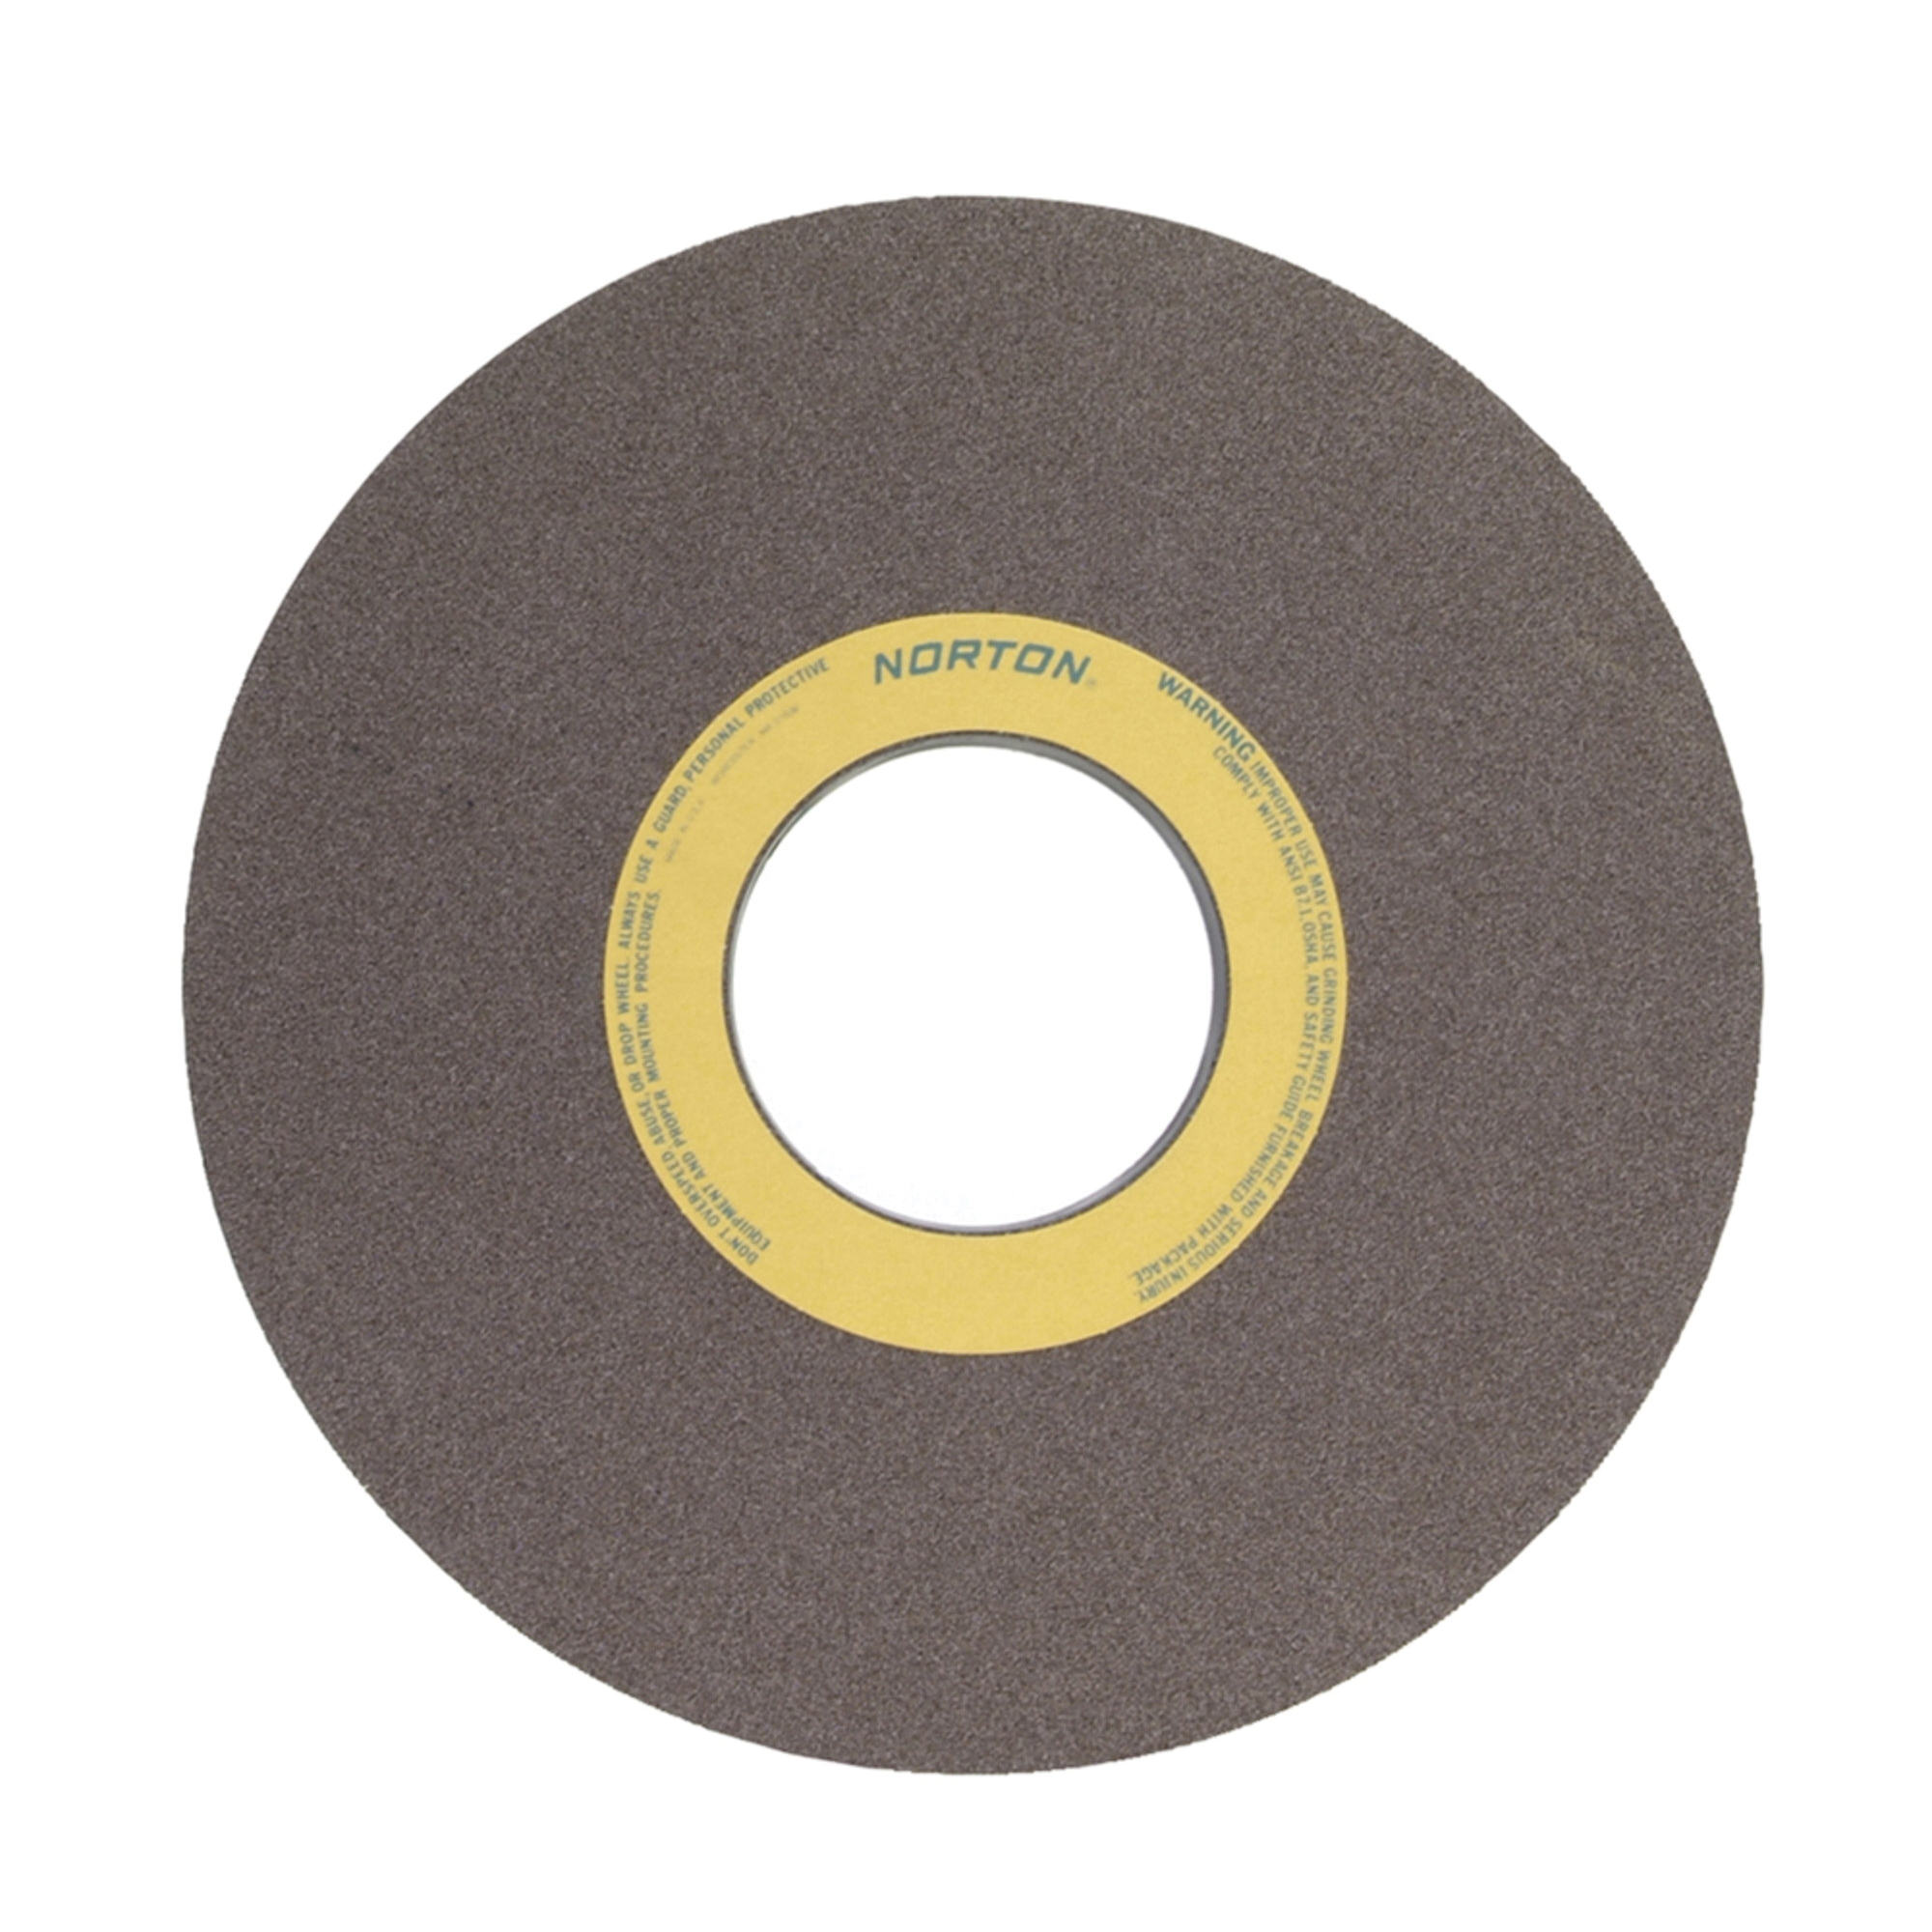 Norton® 69078666447 64A Surface and Cylindrical Grinding Wheel, 20 in Dia x 3 in THK, 8 in Center Hole, 46 Grit, Aluminum Oxide Abrasive